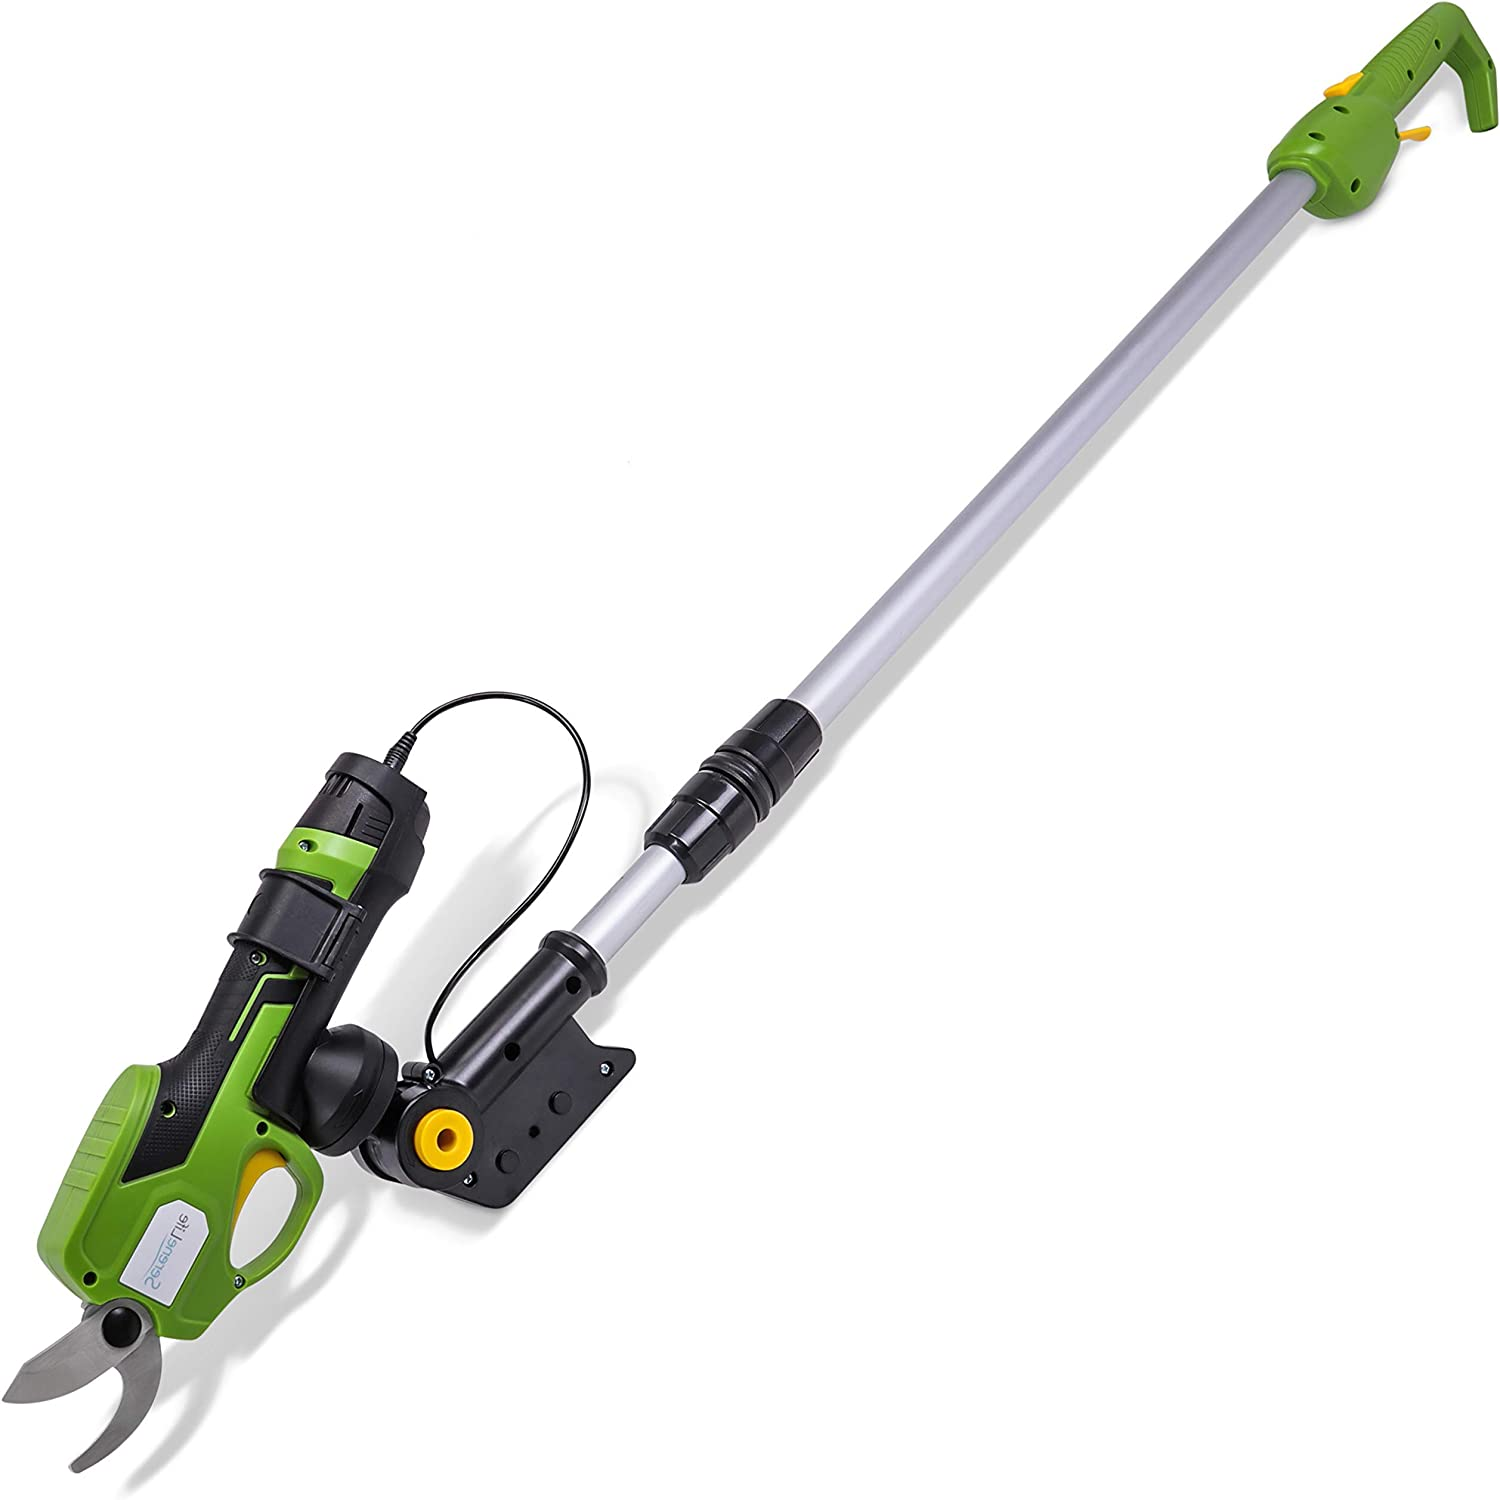 SereneLife Metal 7.2V Lithium-ion Rechargeable Battery Powered Electric Pruning Shears Garden Trimmer-Cordless Branch Cutter Pole Pruner w/Telescopic Handle PSPR190